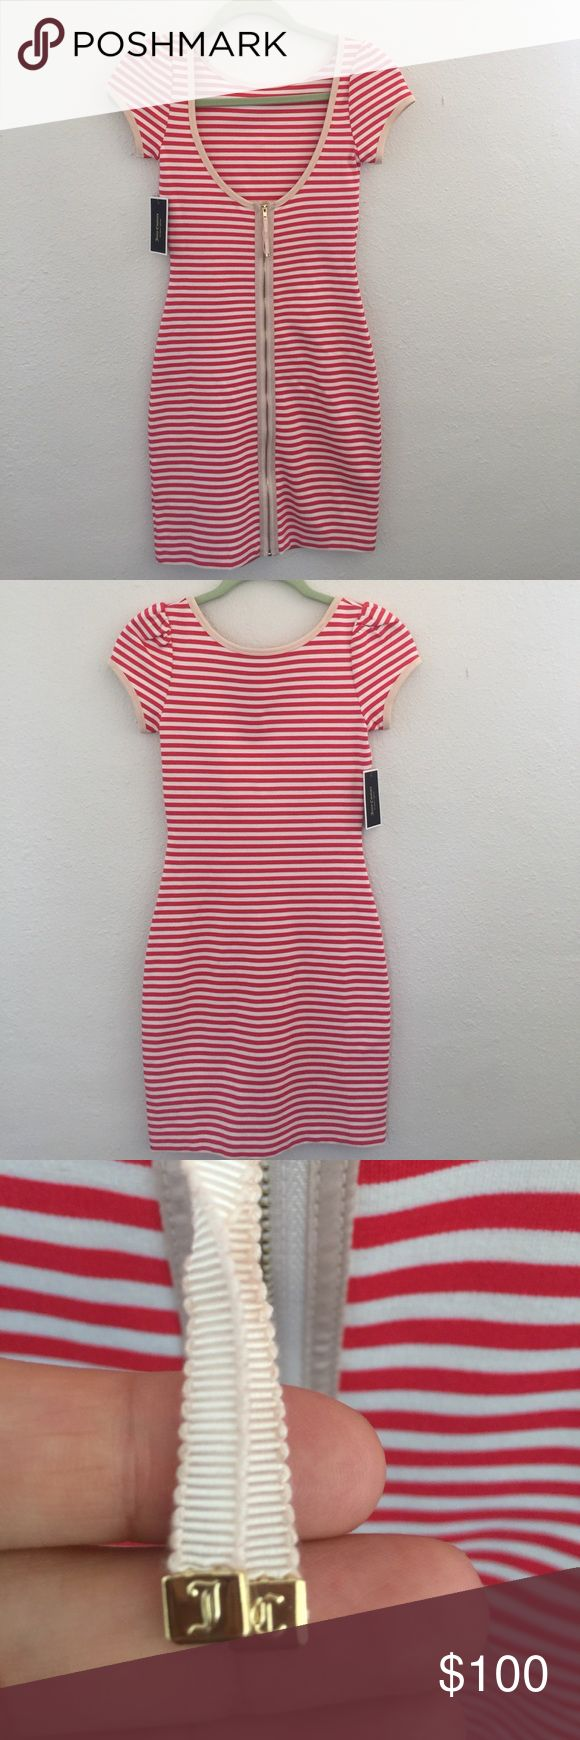 Juicy Couture dress Stripped Bon con dress. First picture is actually the back of the dress. Scoop back with gold zipper. NWT size XS cap sleeves. Juicy Couture Dresses Midi